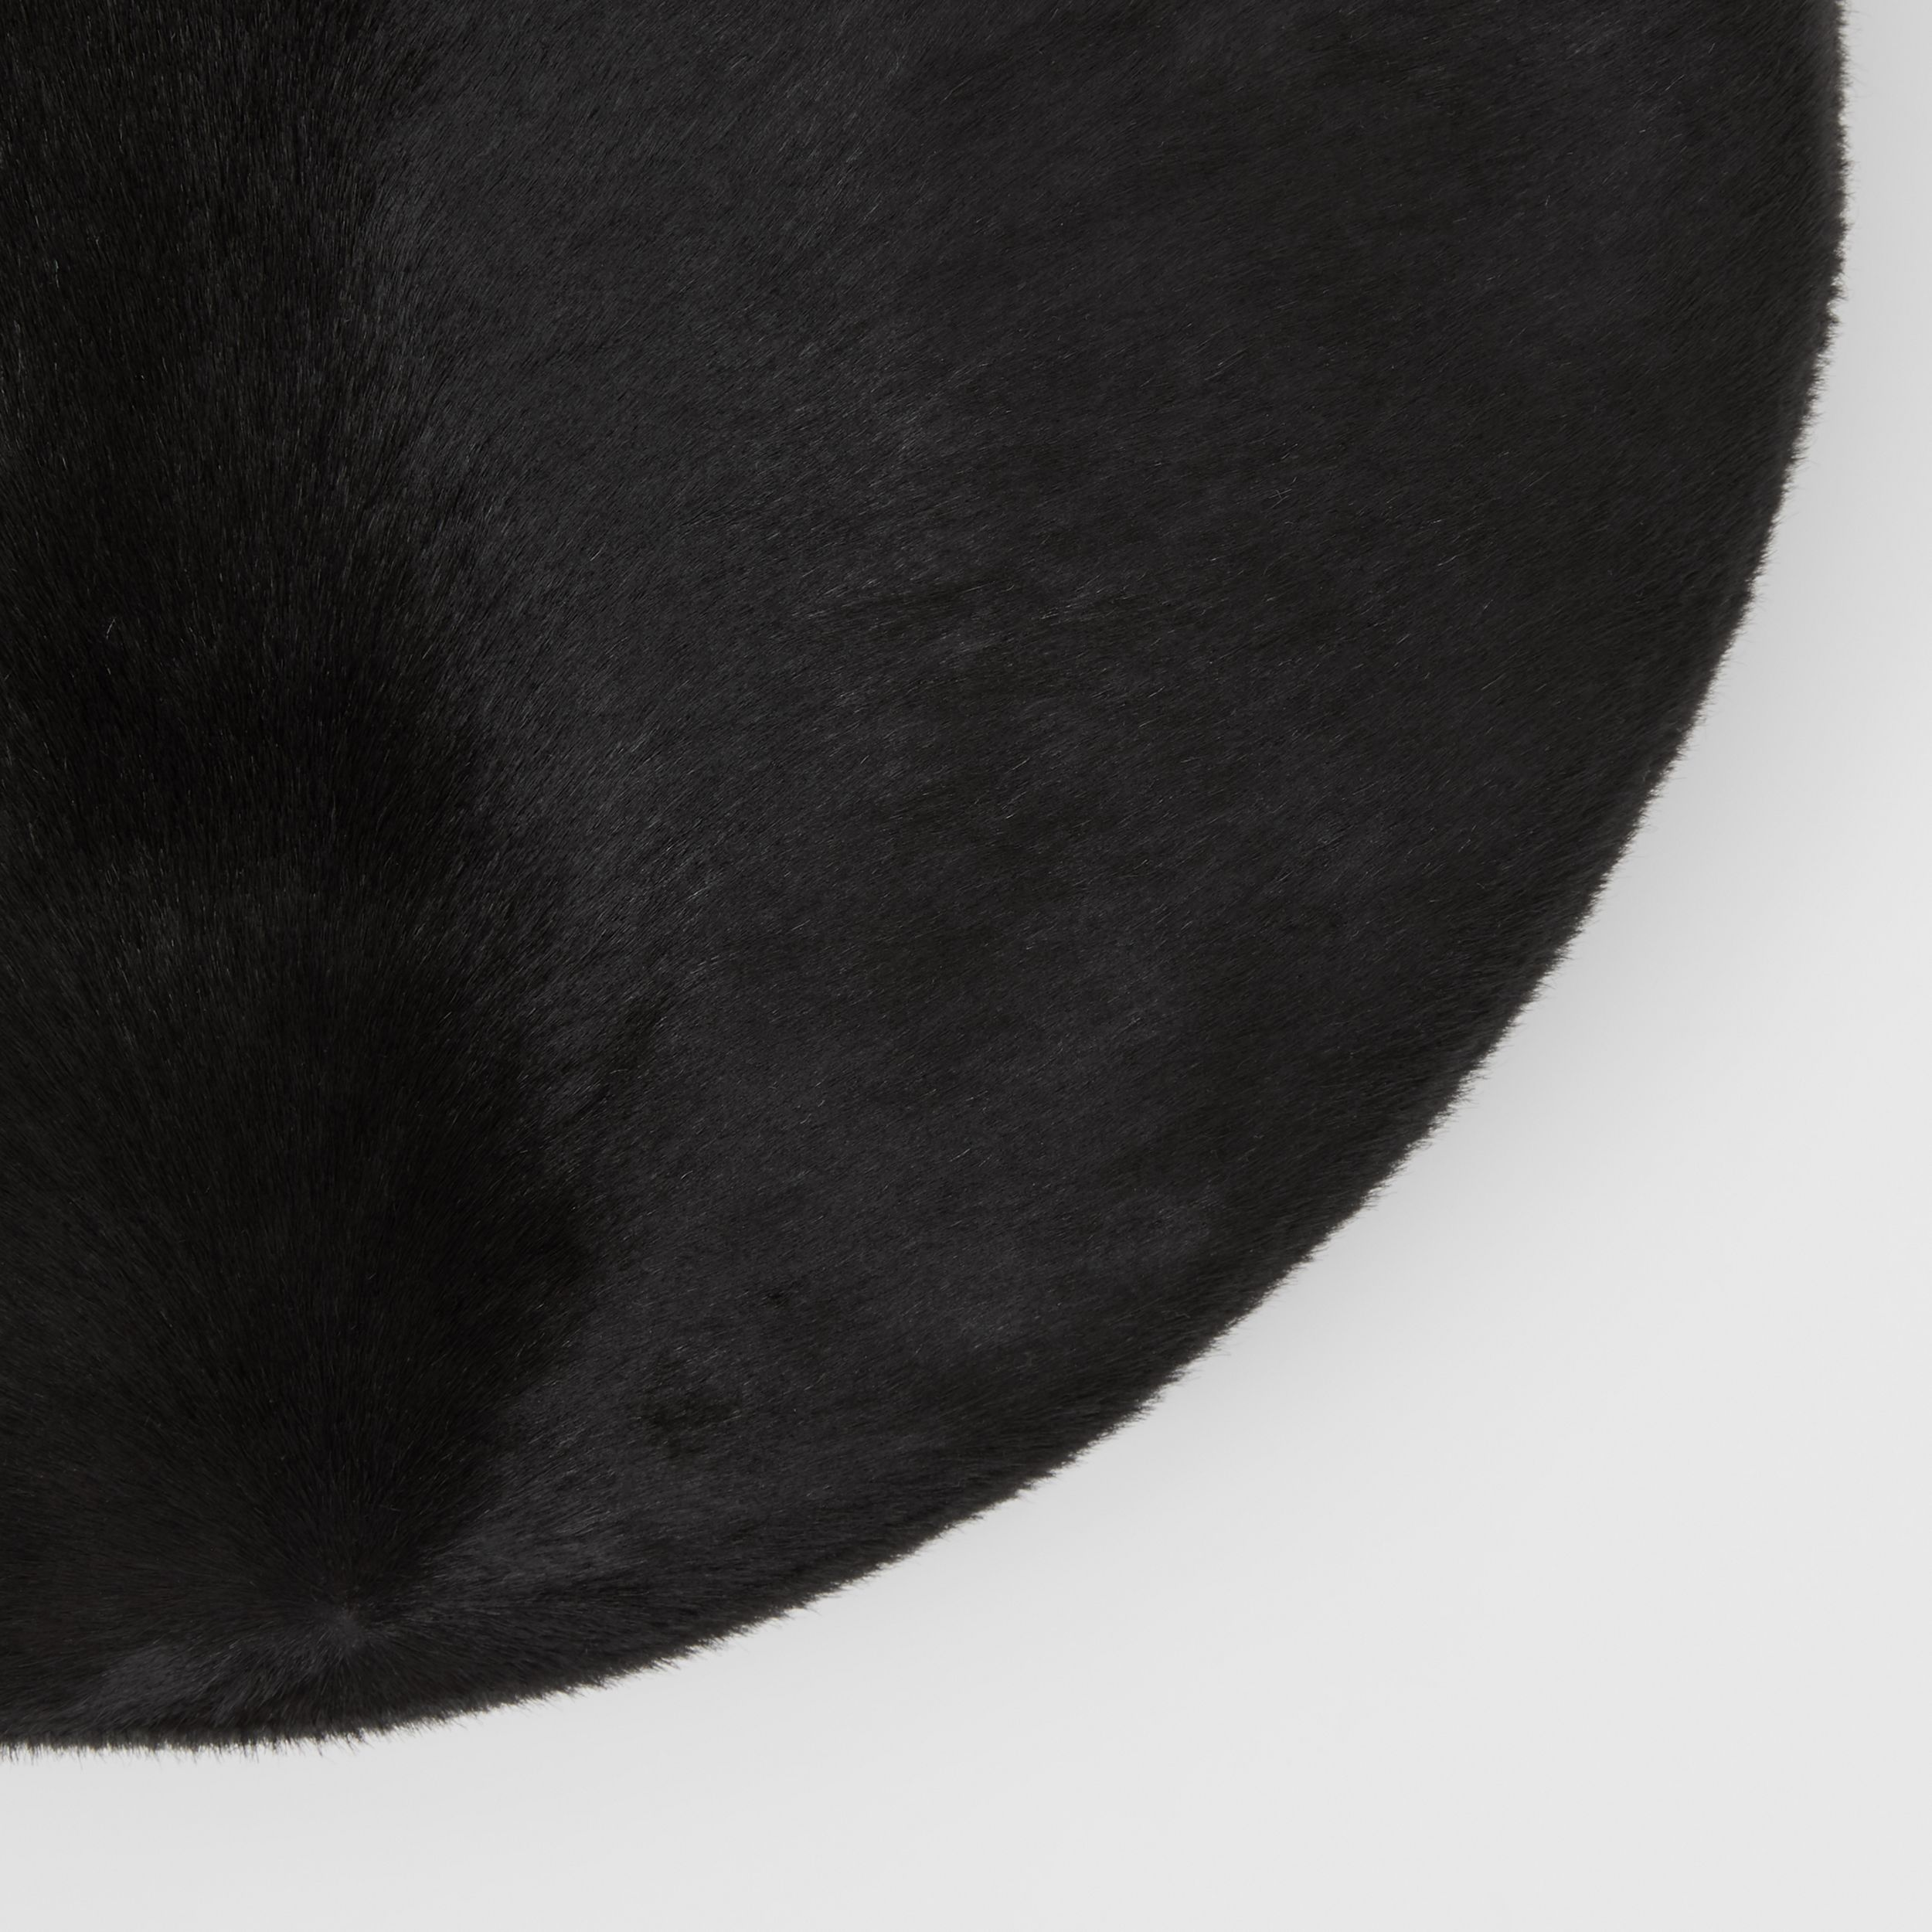 Calf Hair Oversized Beret in Black | Burberry - 2